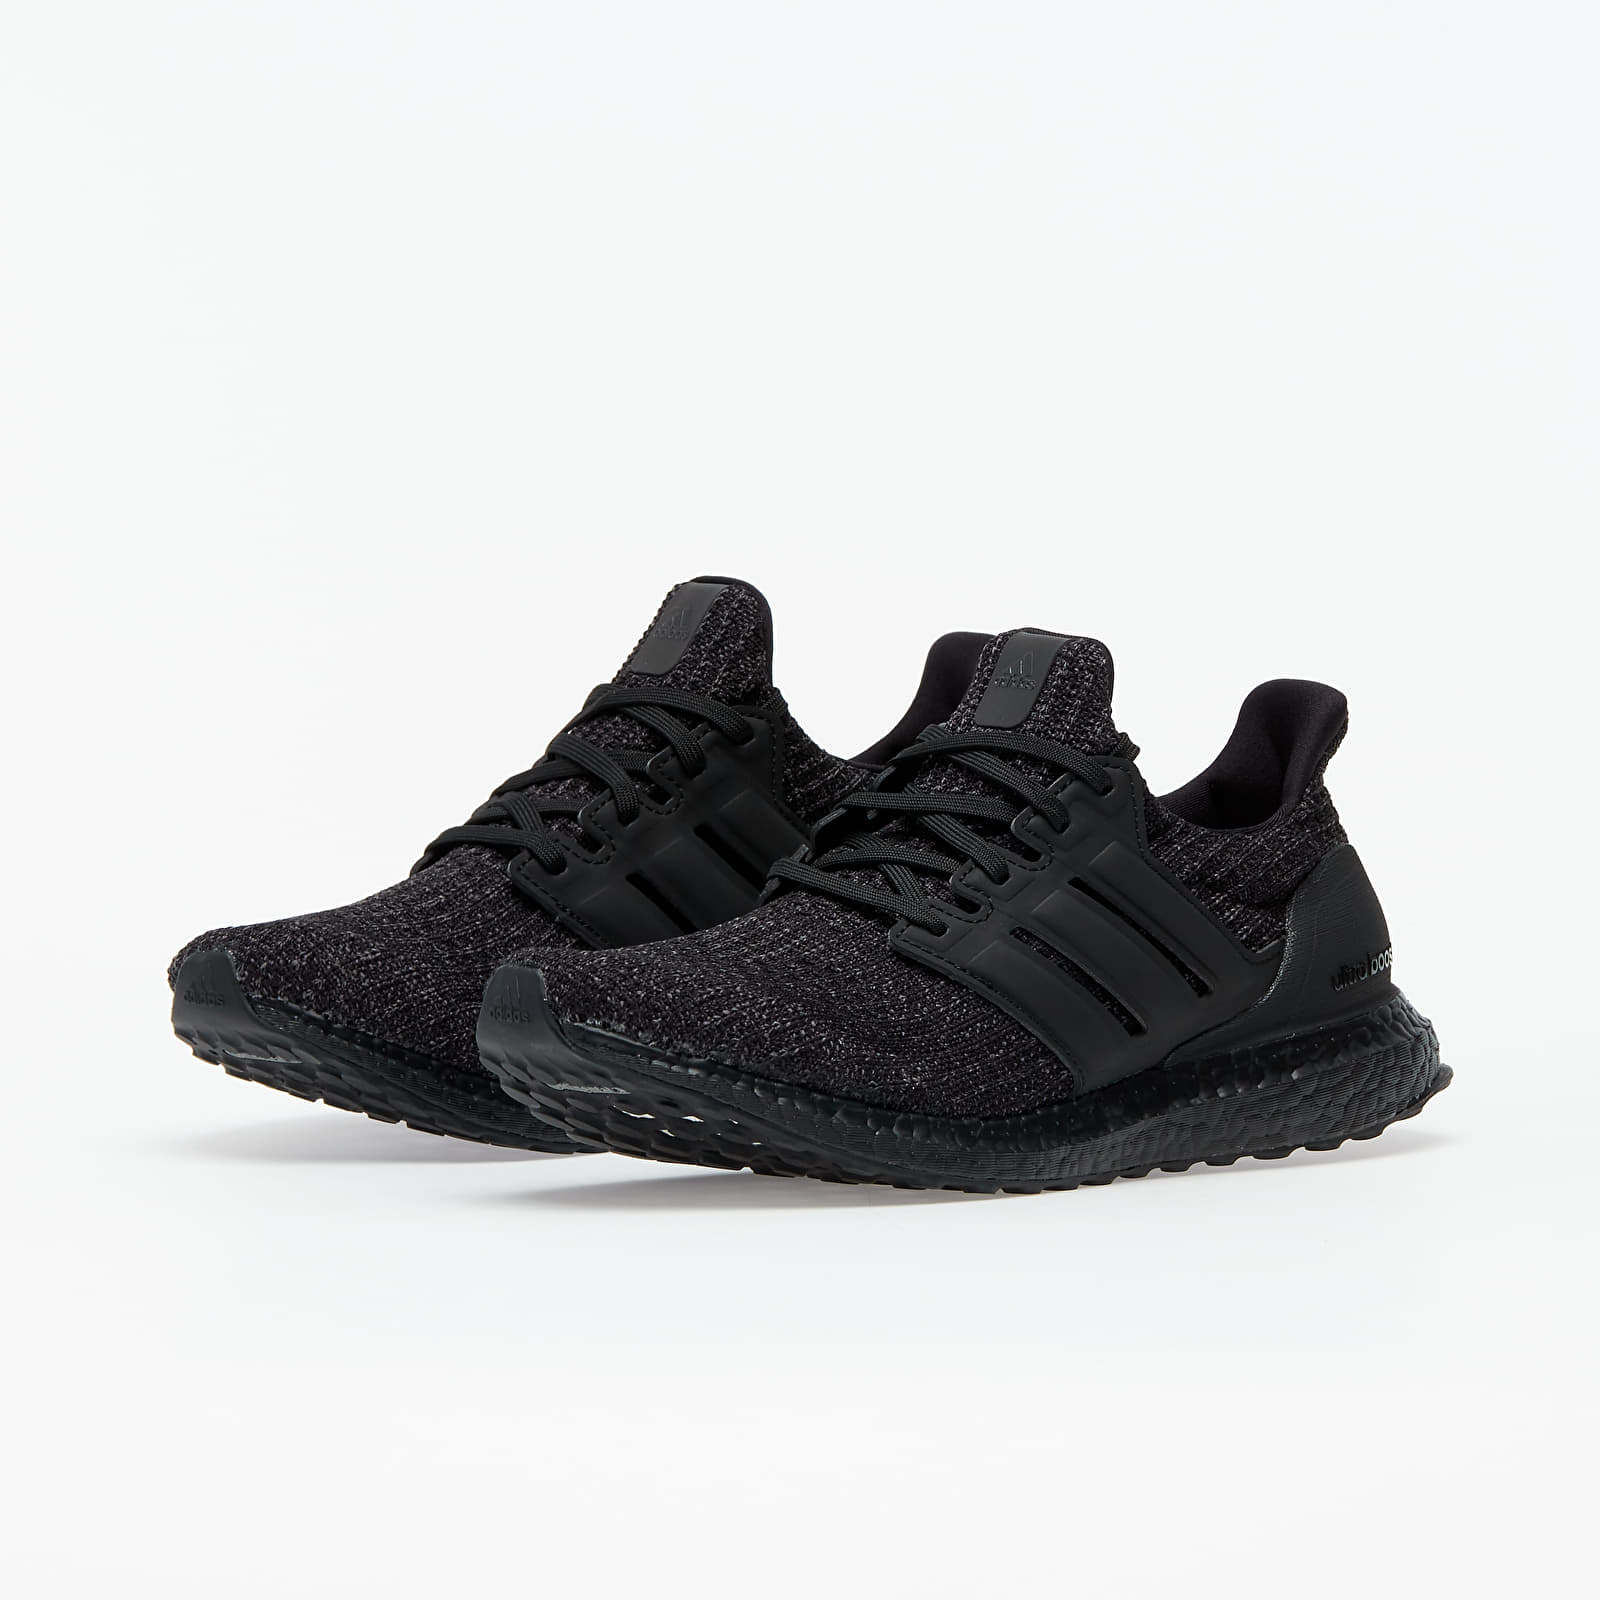 adidas UltraBOOST Core Black/ Core Black/ Active Red